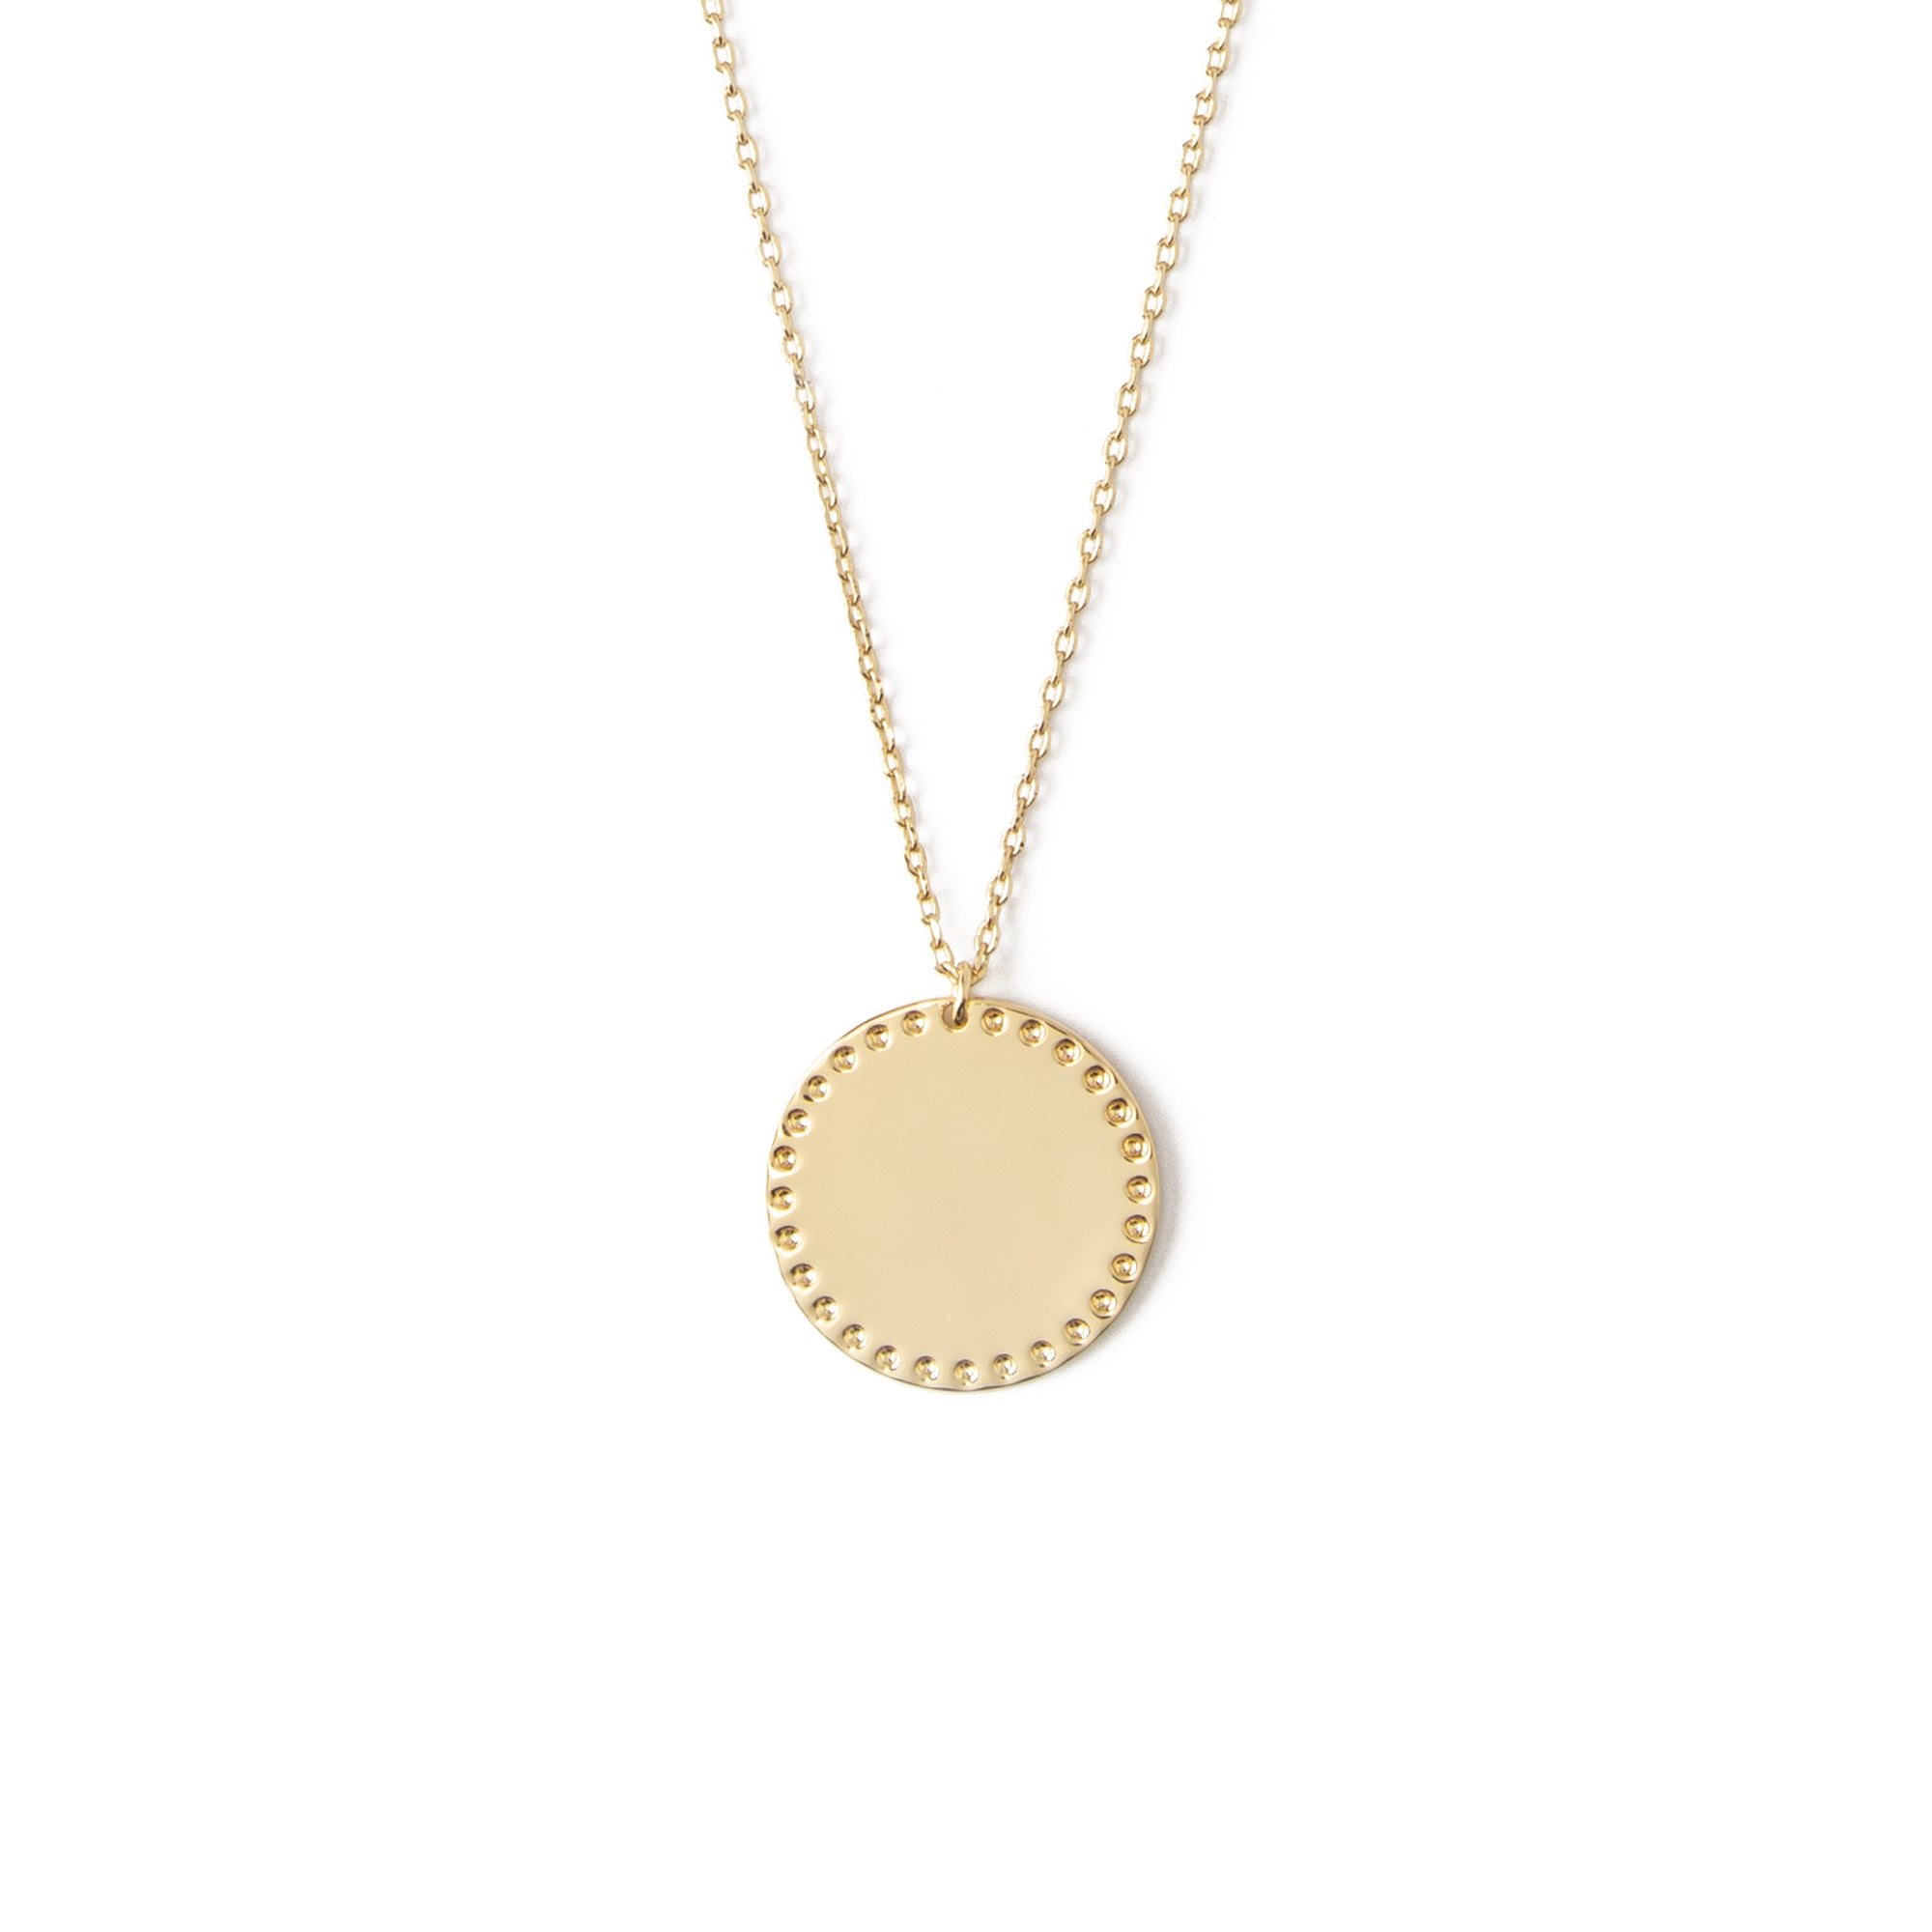 LUXE Coin Charm Necklace - Gold